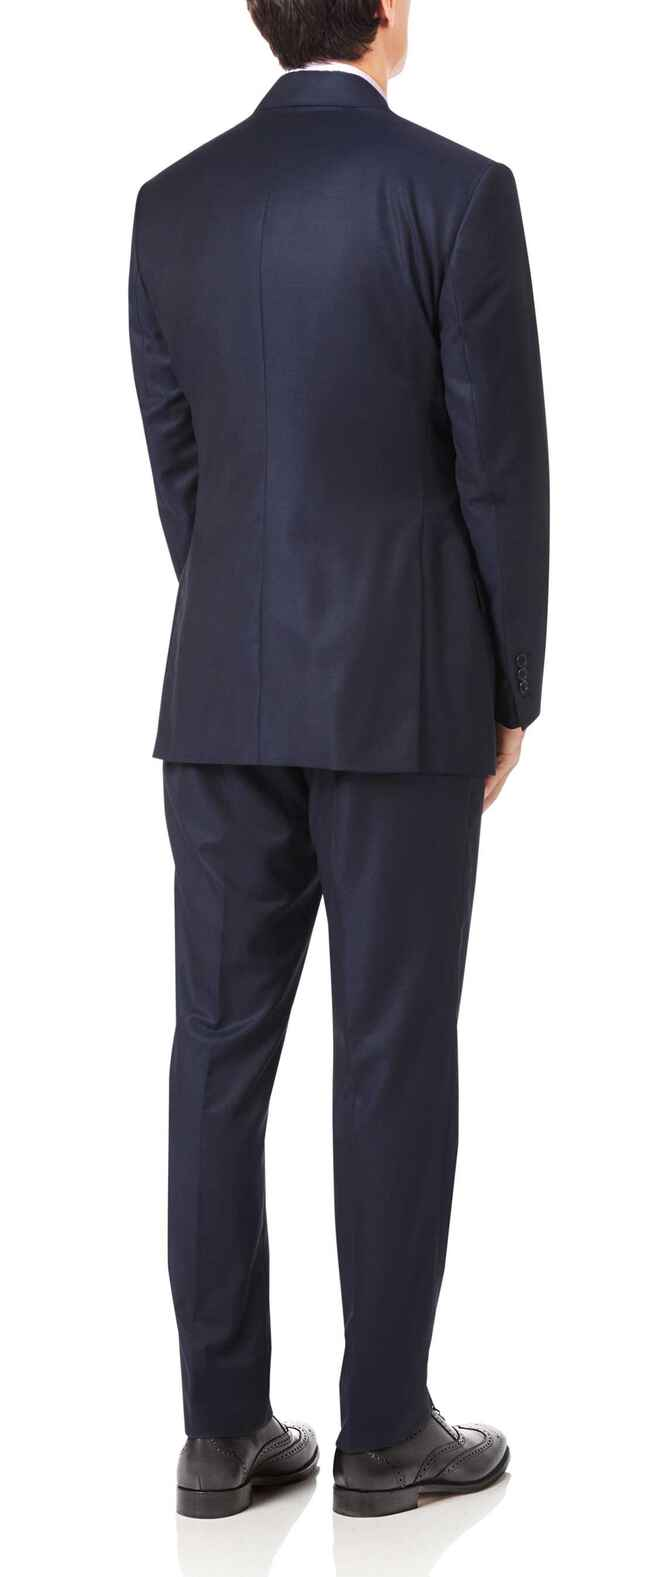 Navy slim fit luxury Italian suit